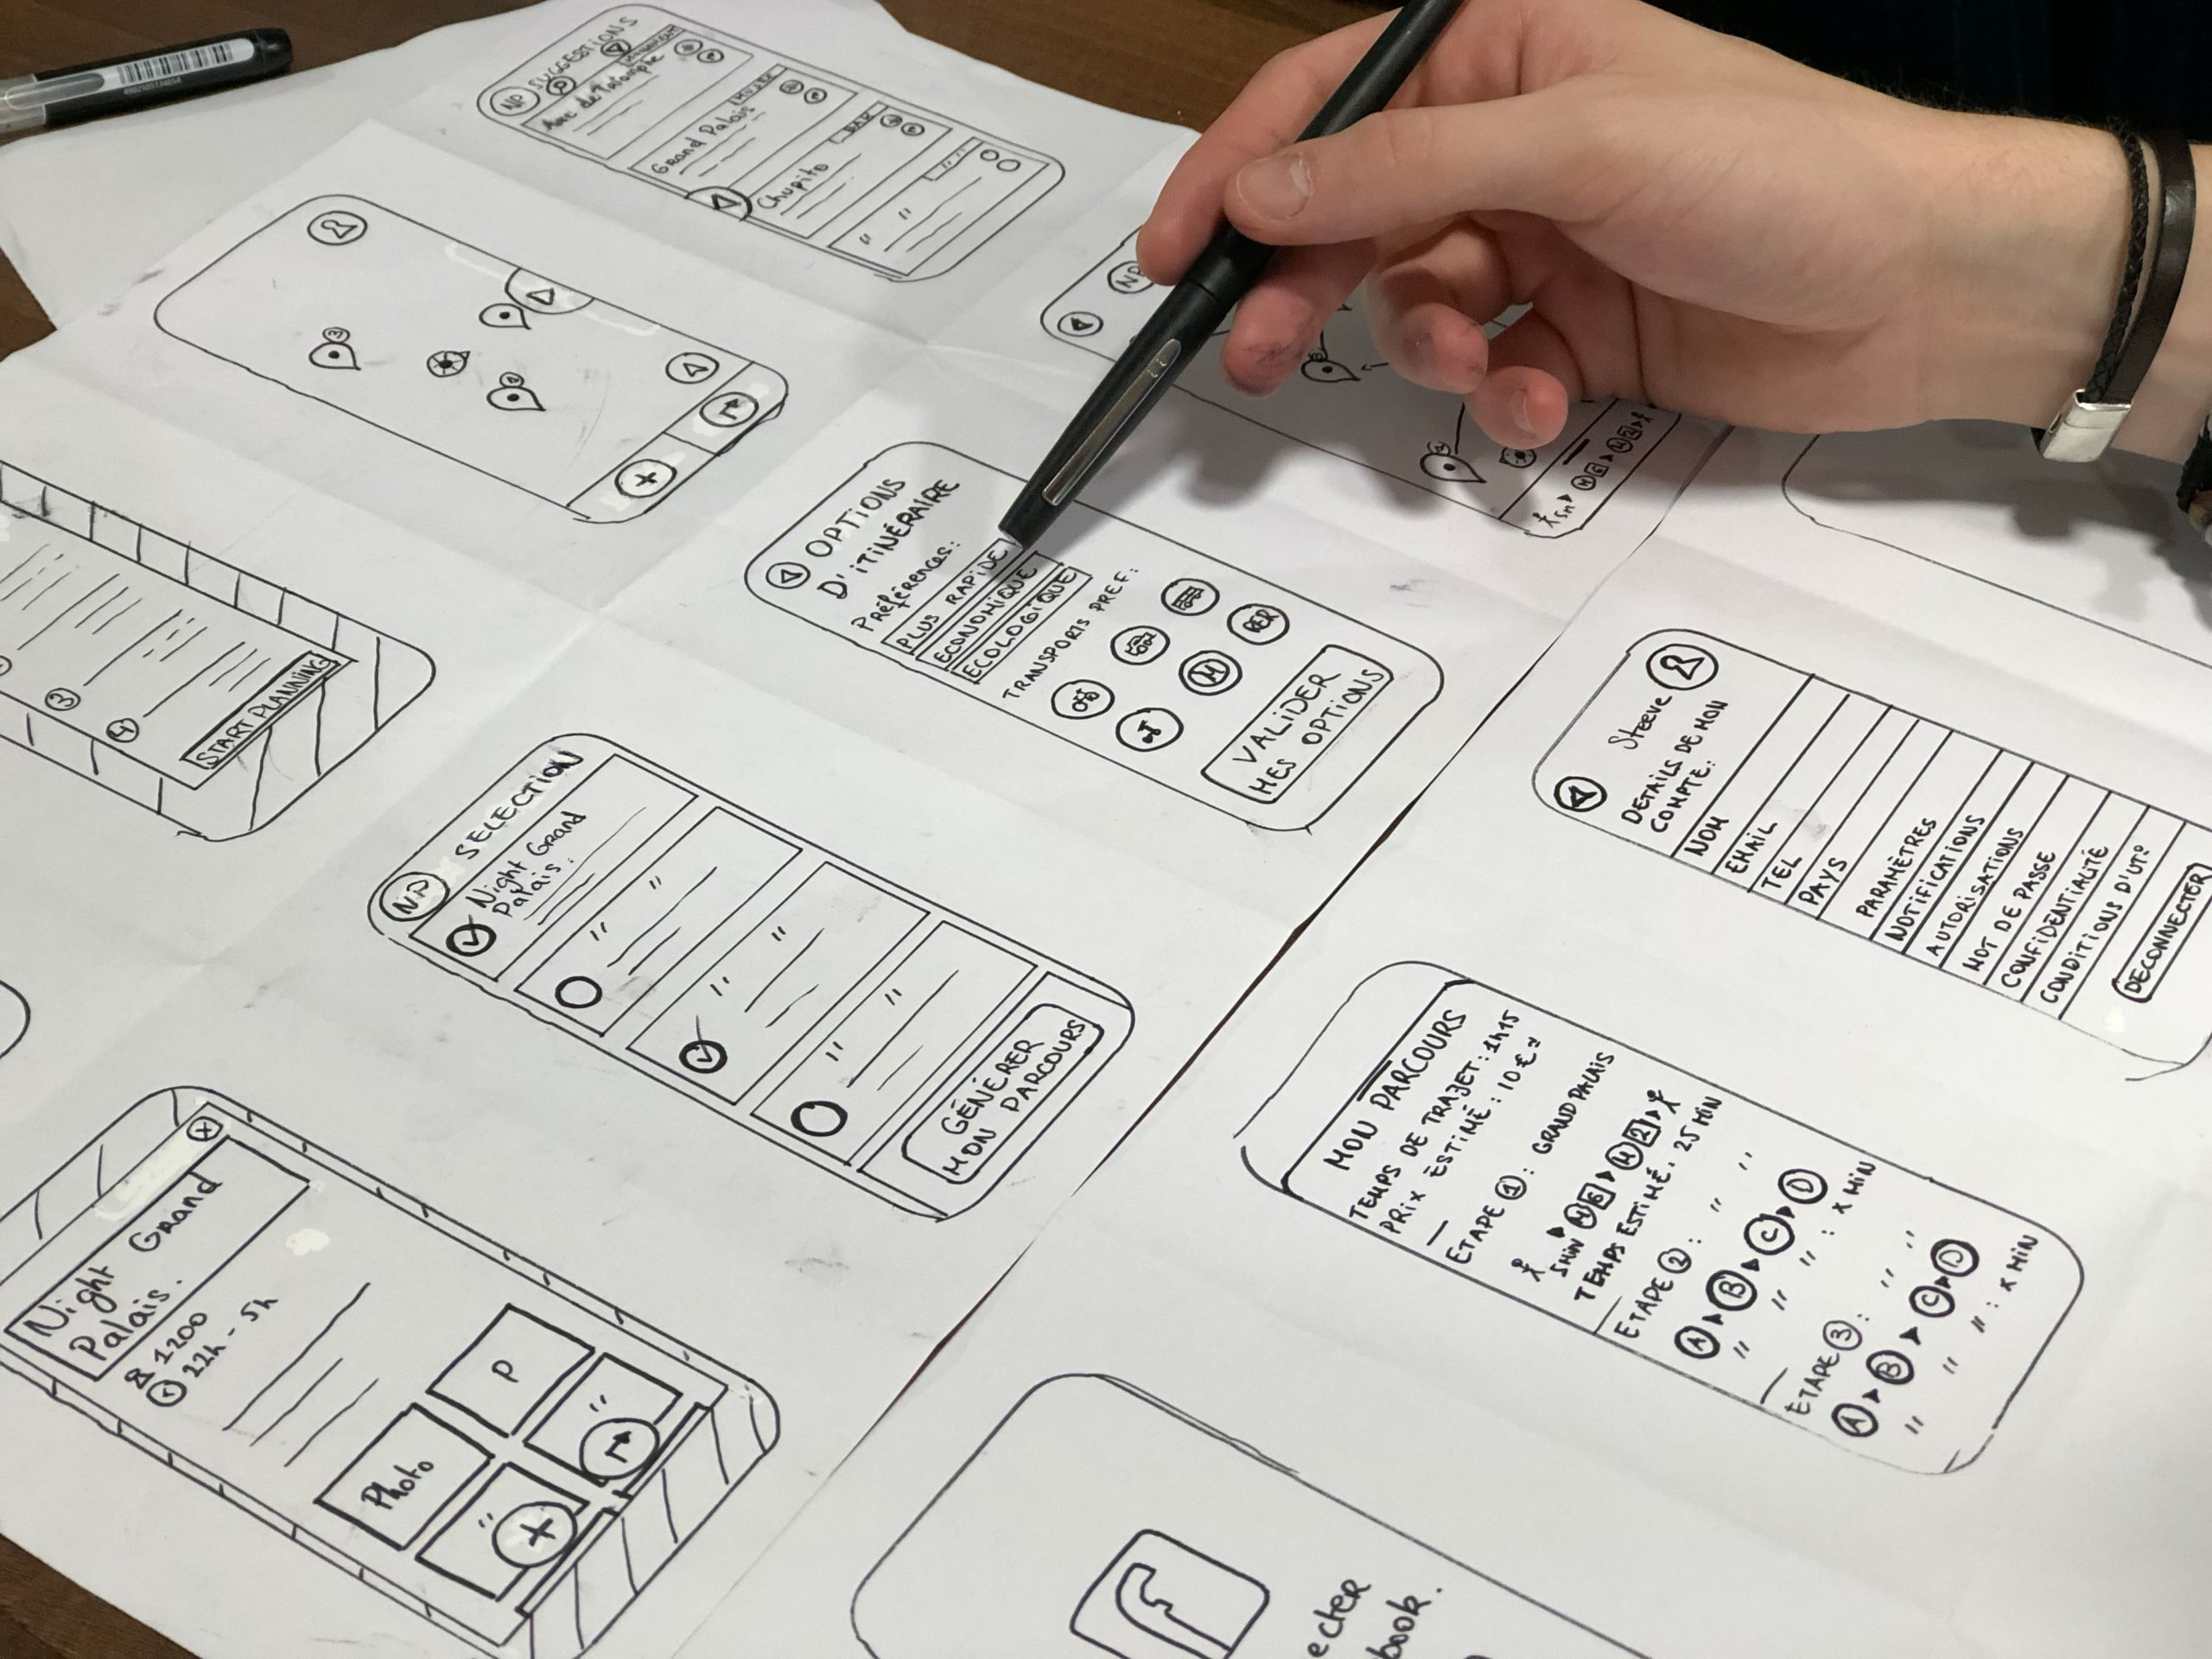 Prototyping: Tools and Software for Rapid Prototyping